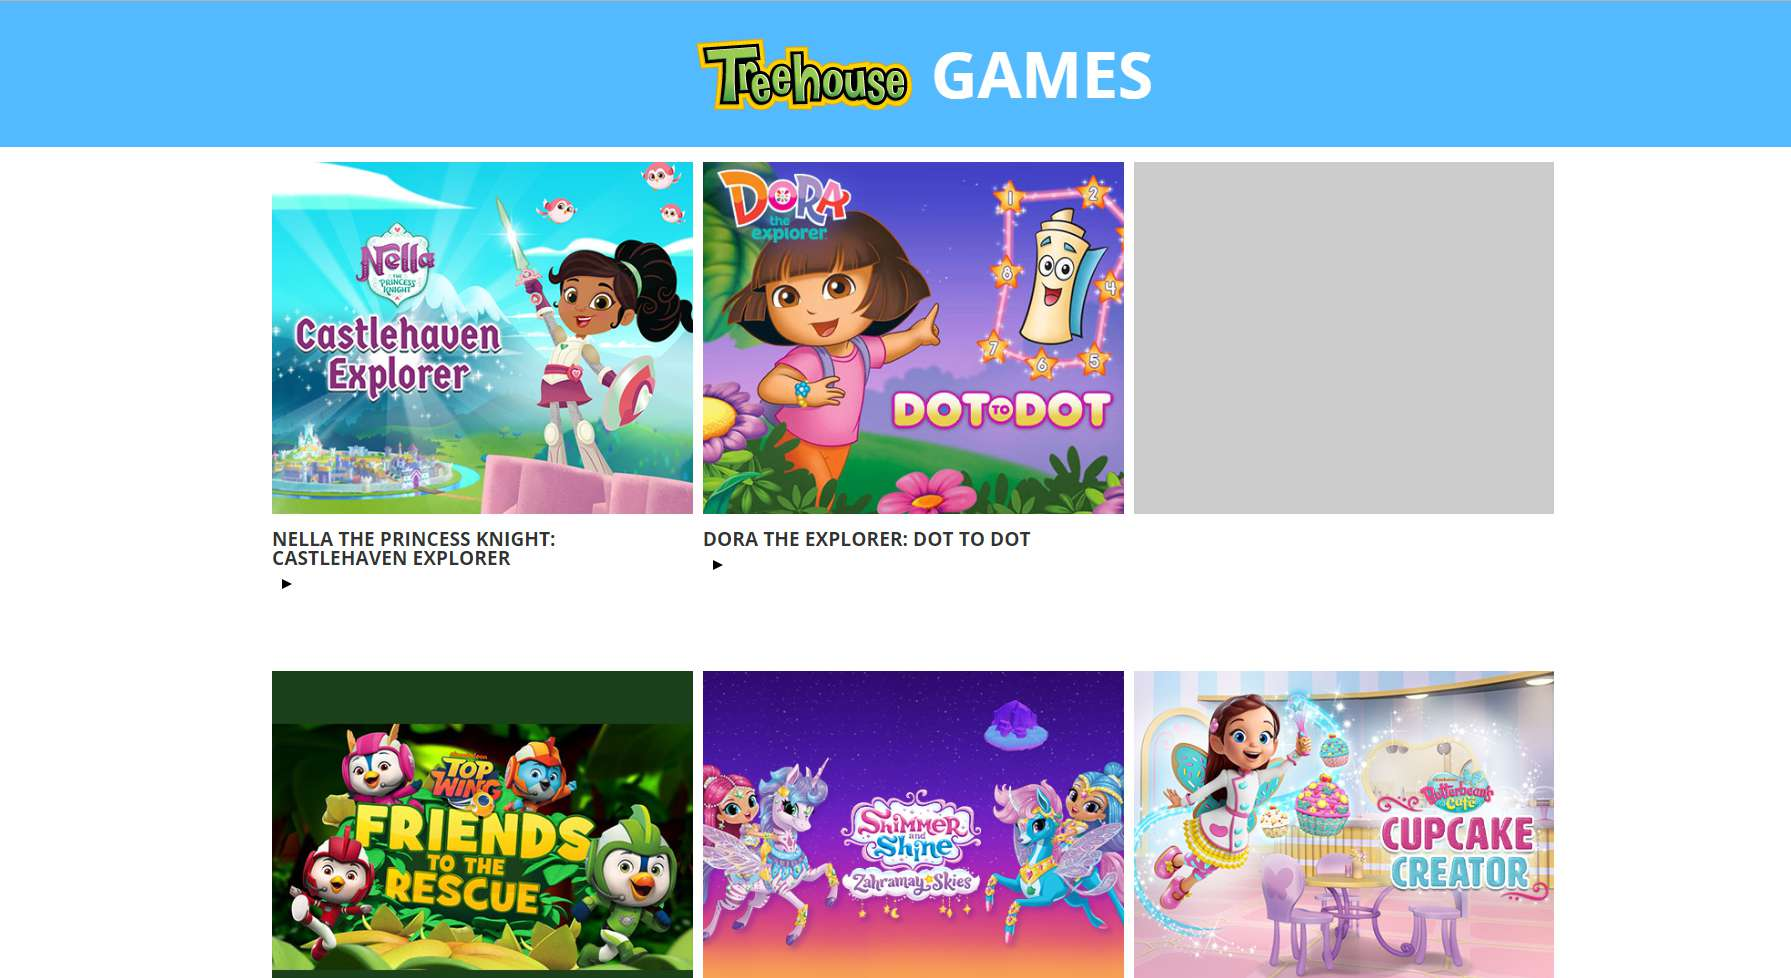 The homepage of Treehouse Games